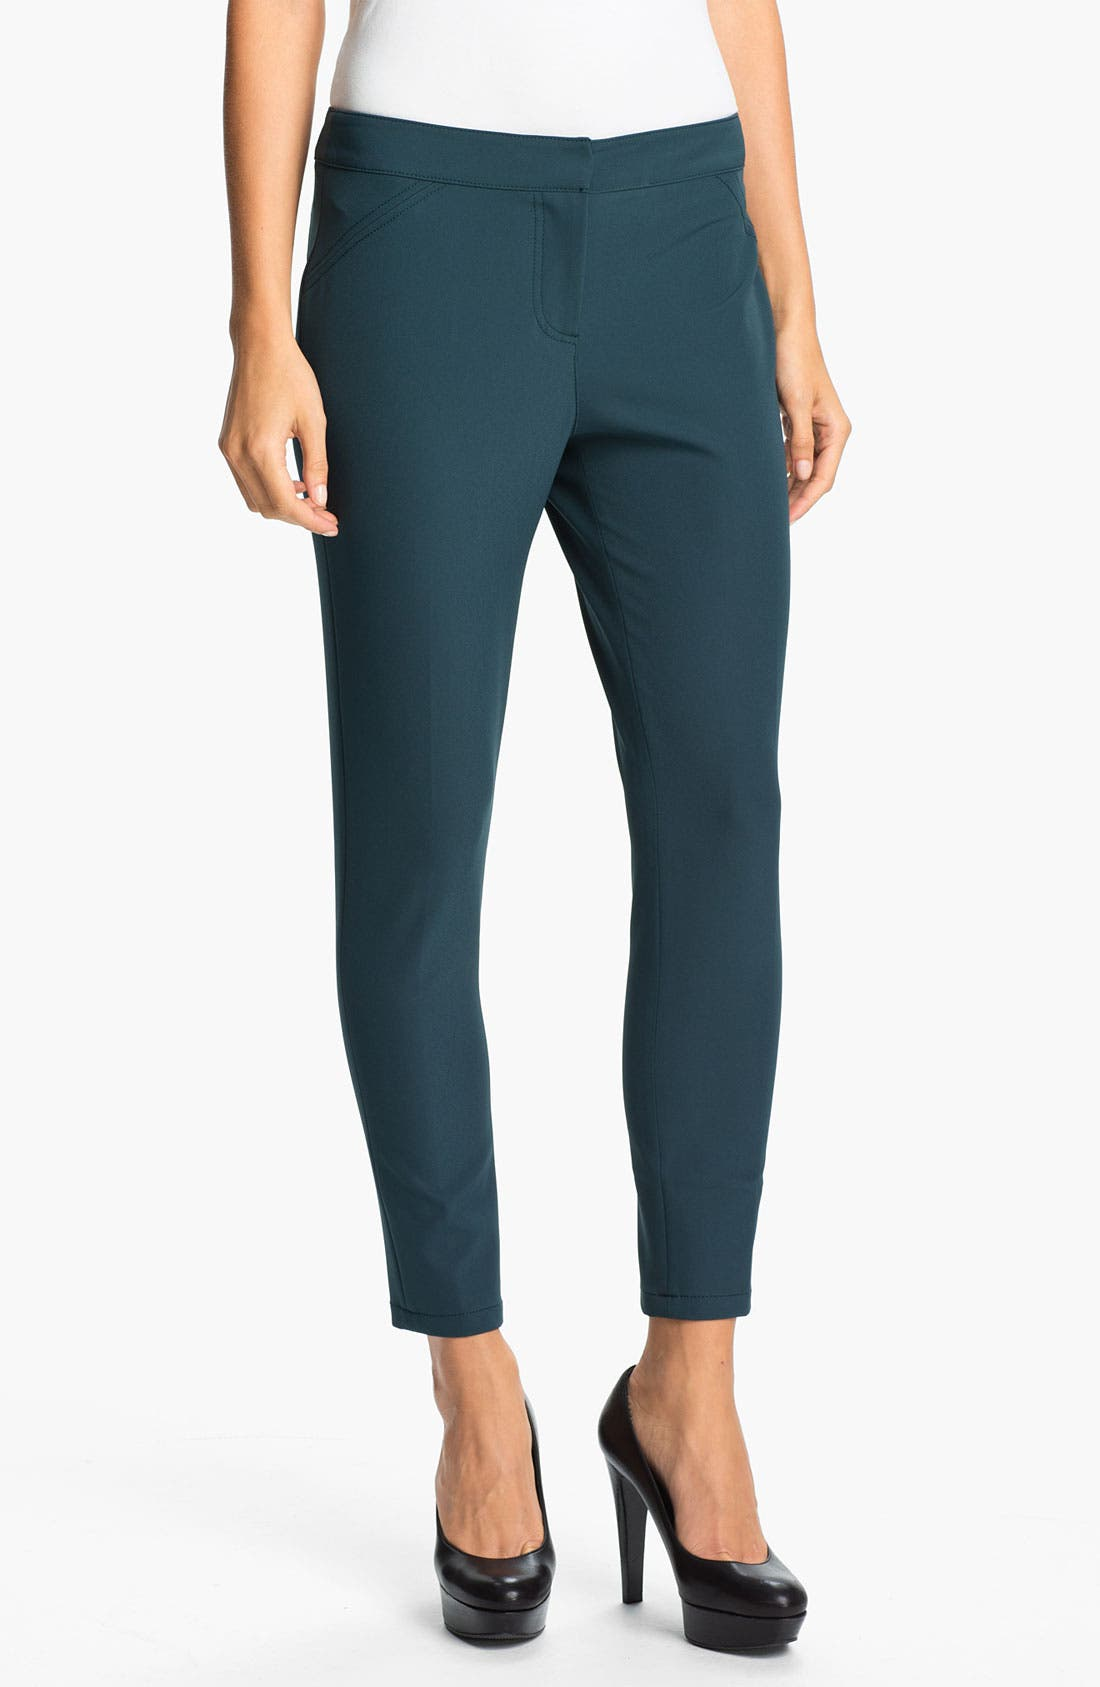 Main Image - Kenneth Cole New York 'Paige' Tech Pants (Petite)